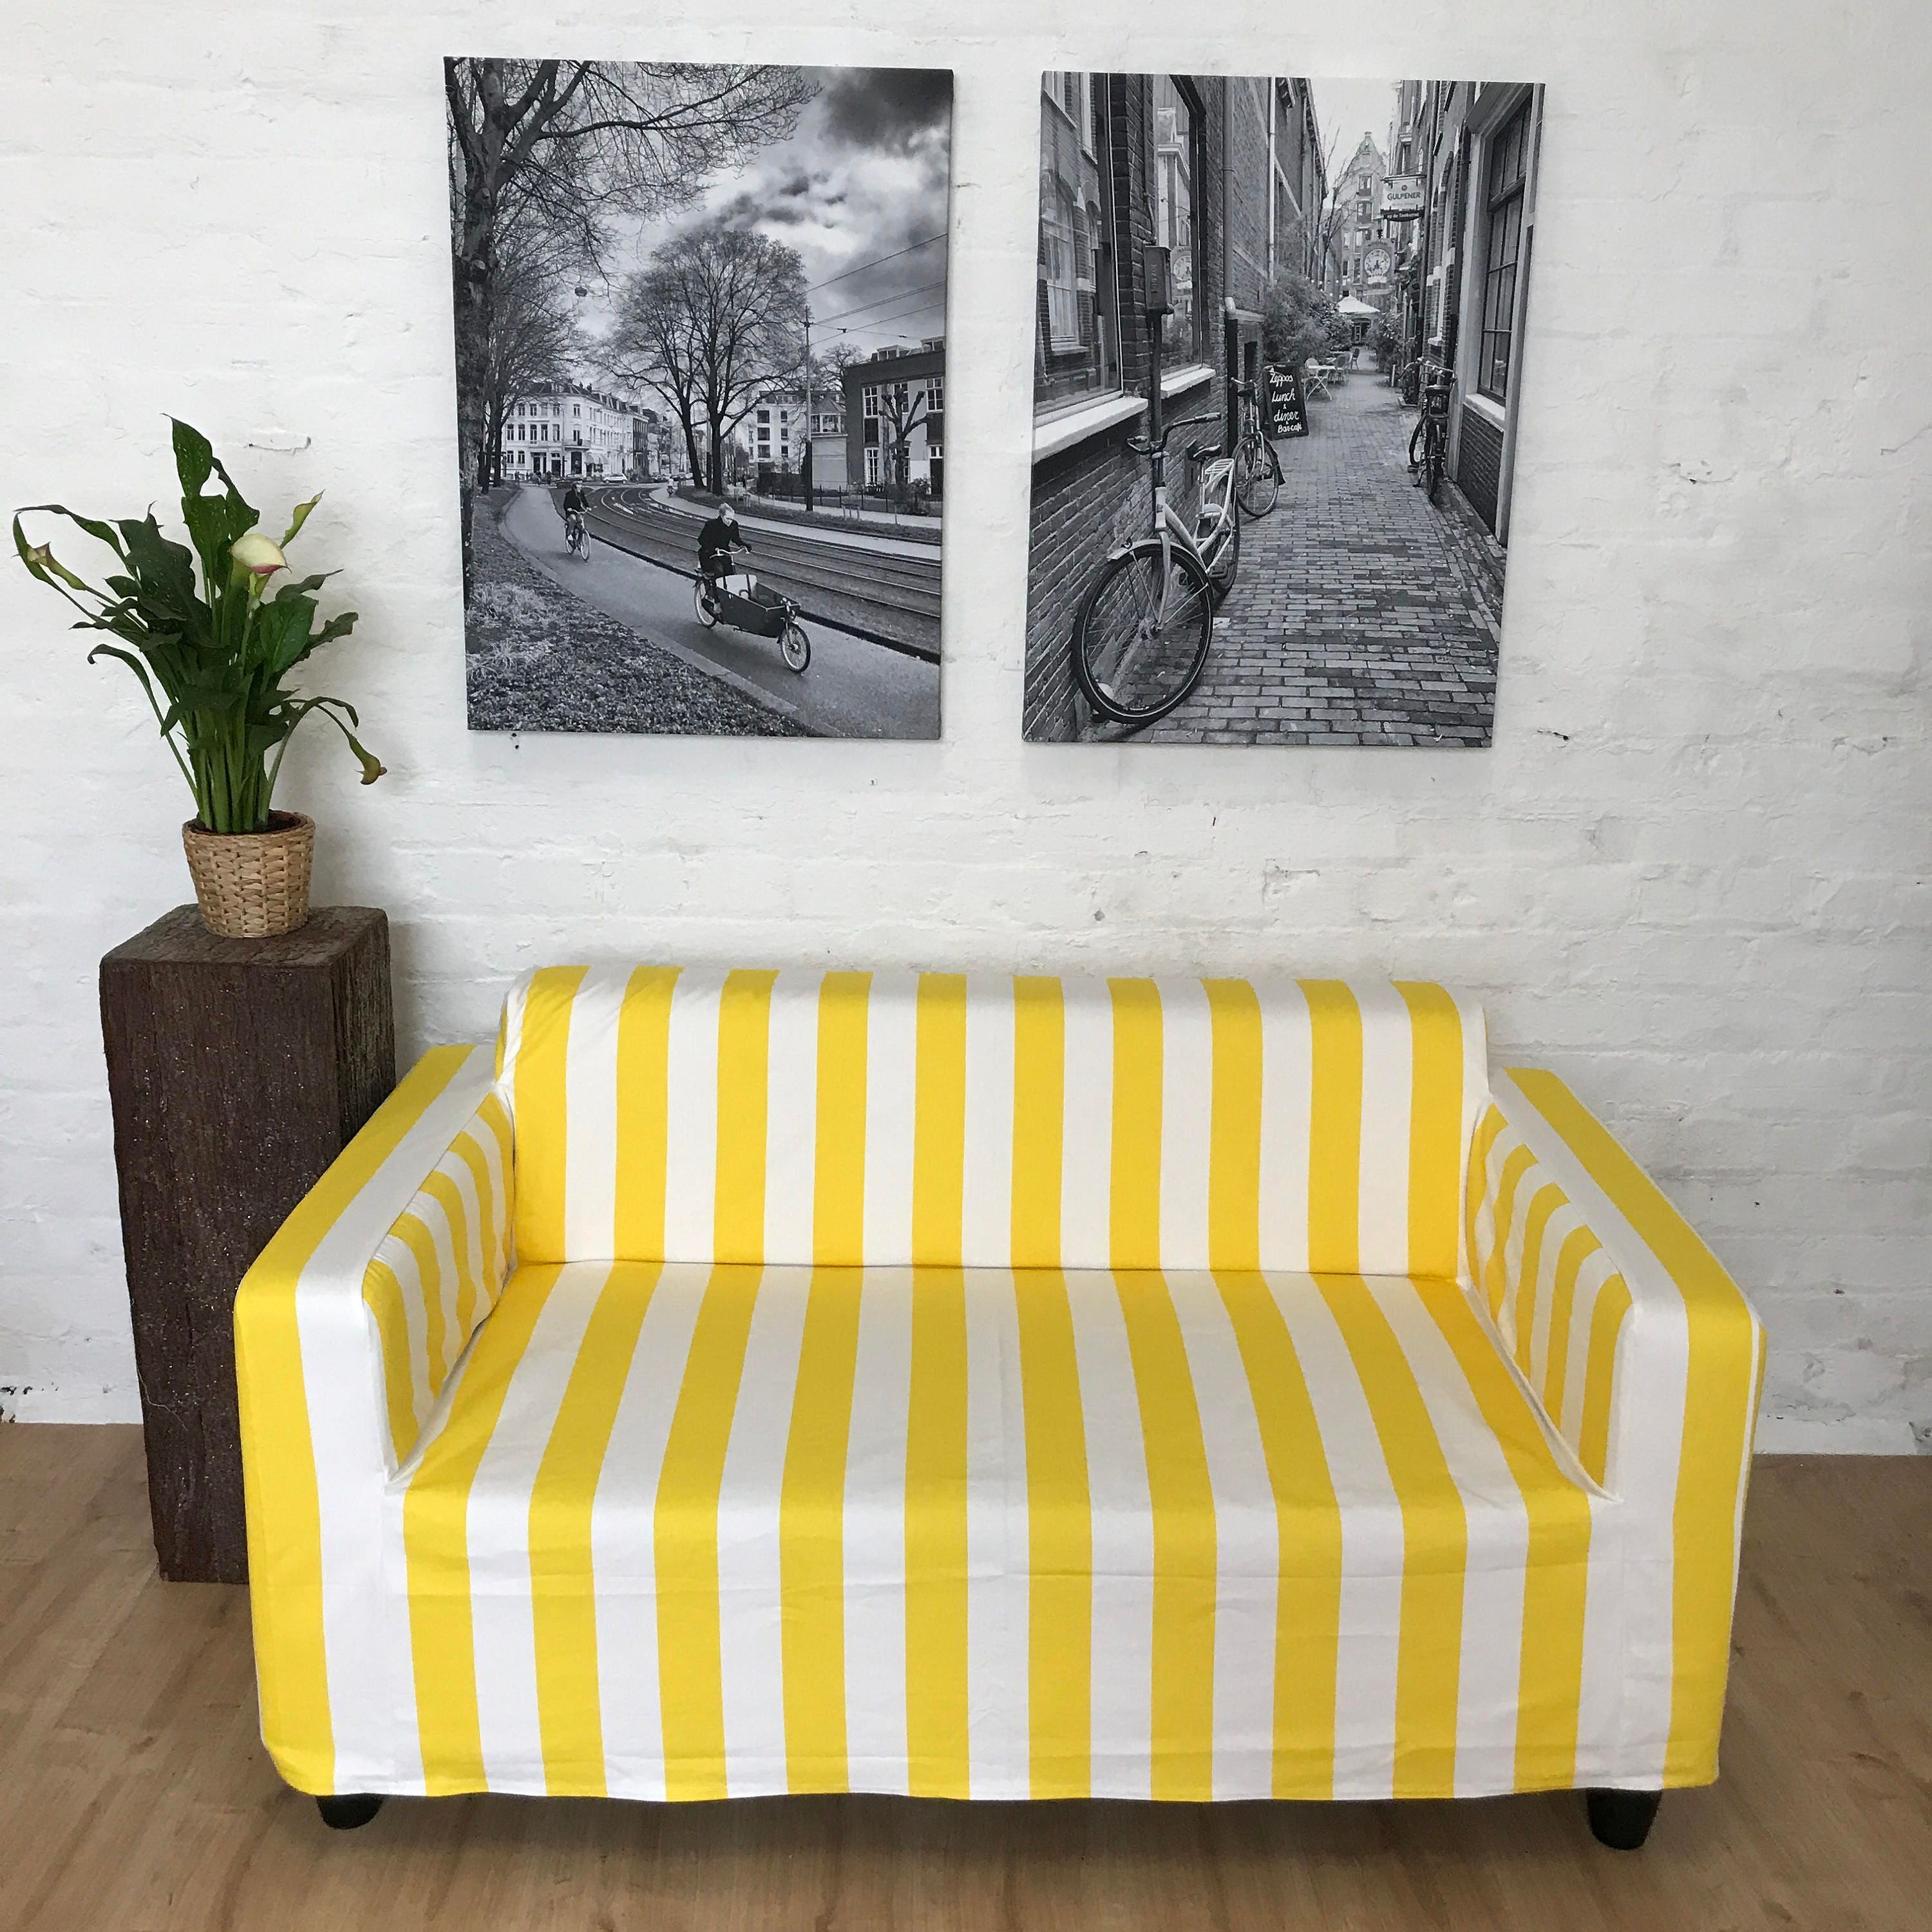 Ikea slip cover for Klobo sofa in Yellow and White Strip